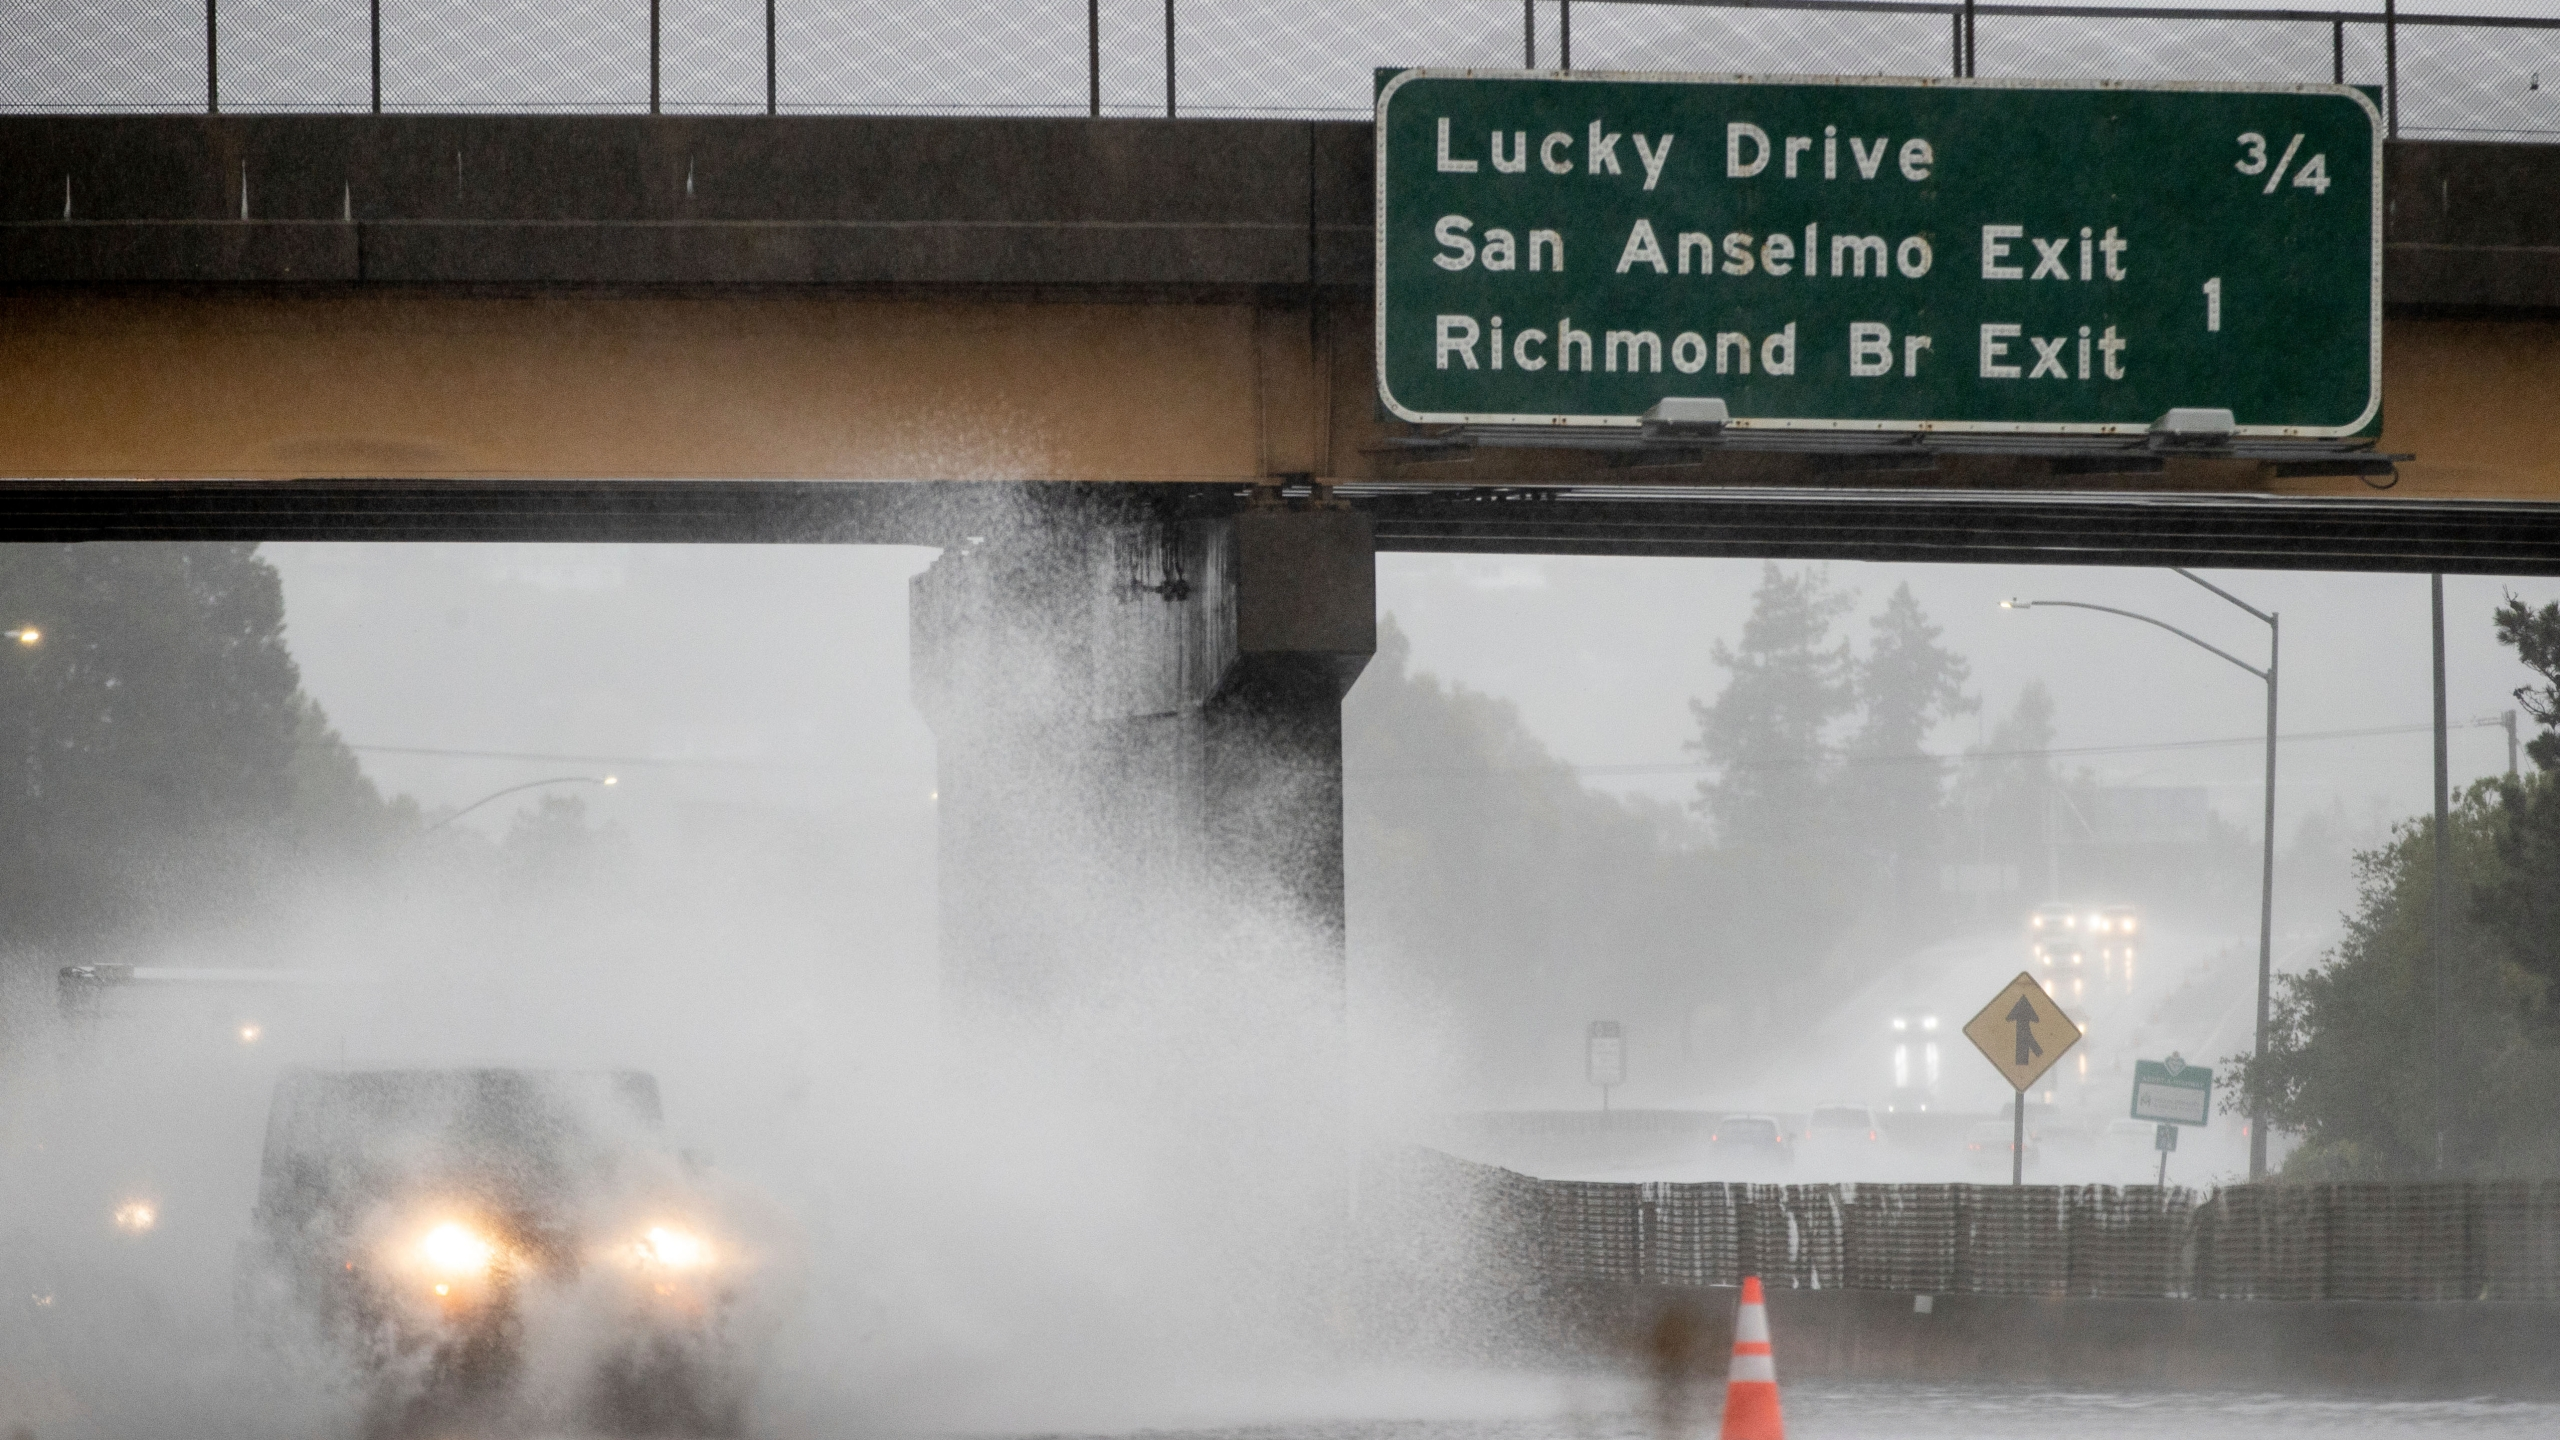 A car drives on Highway 101, which is partially flooded in Corte Madera, Calif., Sunday, Oct. 24, 2021. (AP Photo/Ethan Swope)